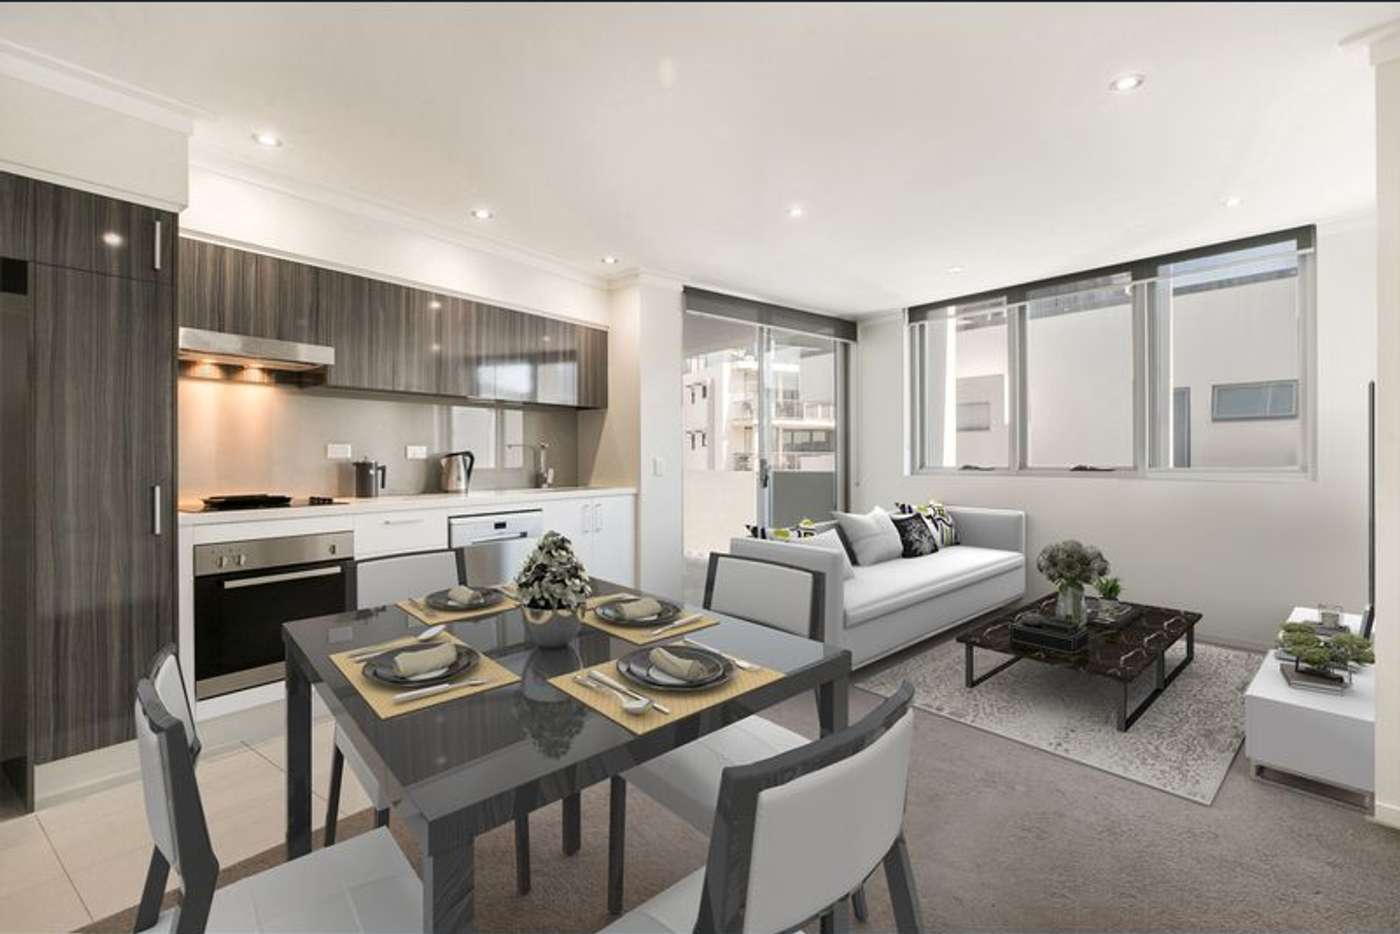 Main view of Homely apartment listing, 1002/35 MCDOUGALL, Milton QLD 4064